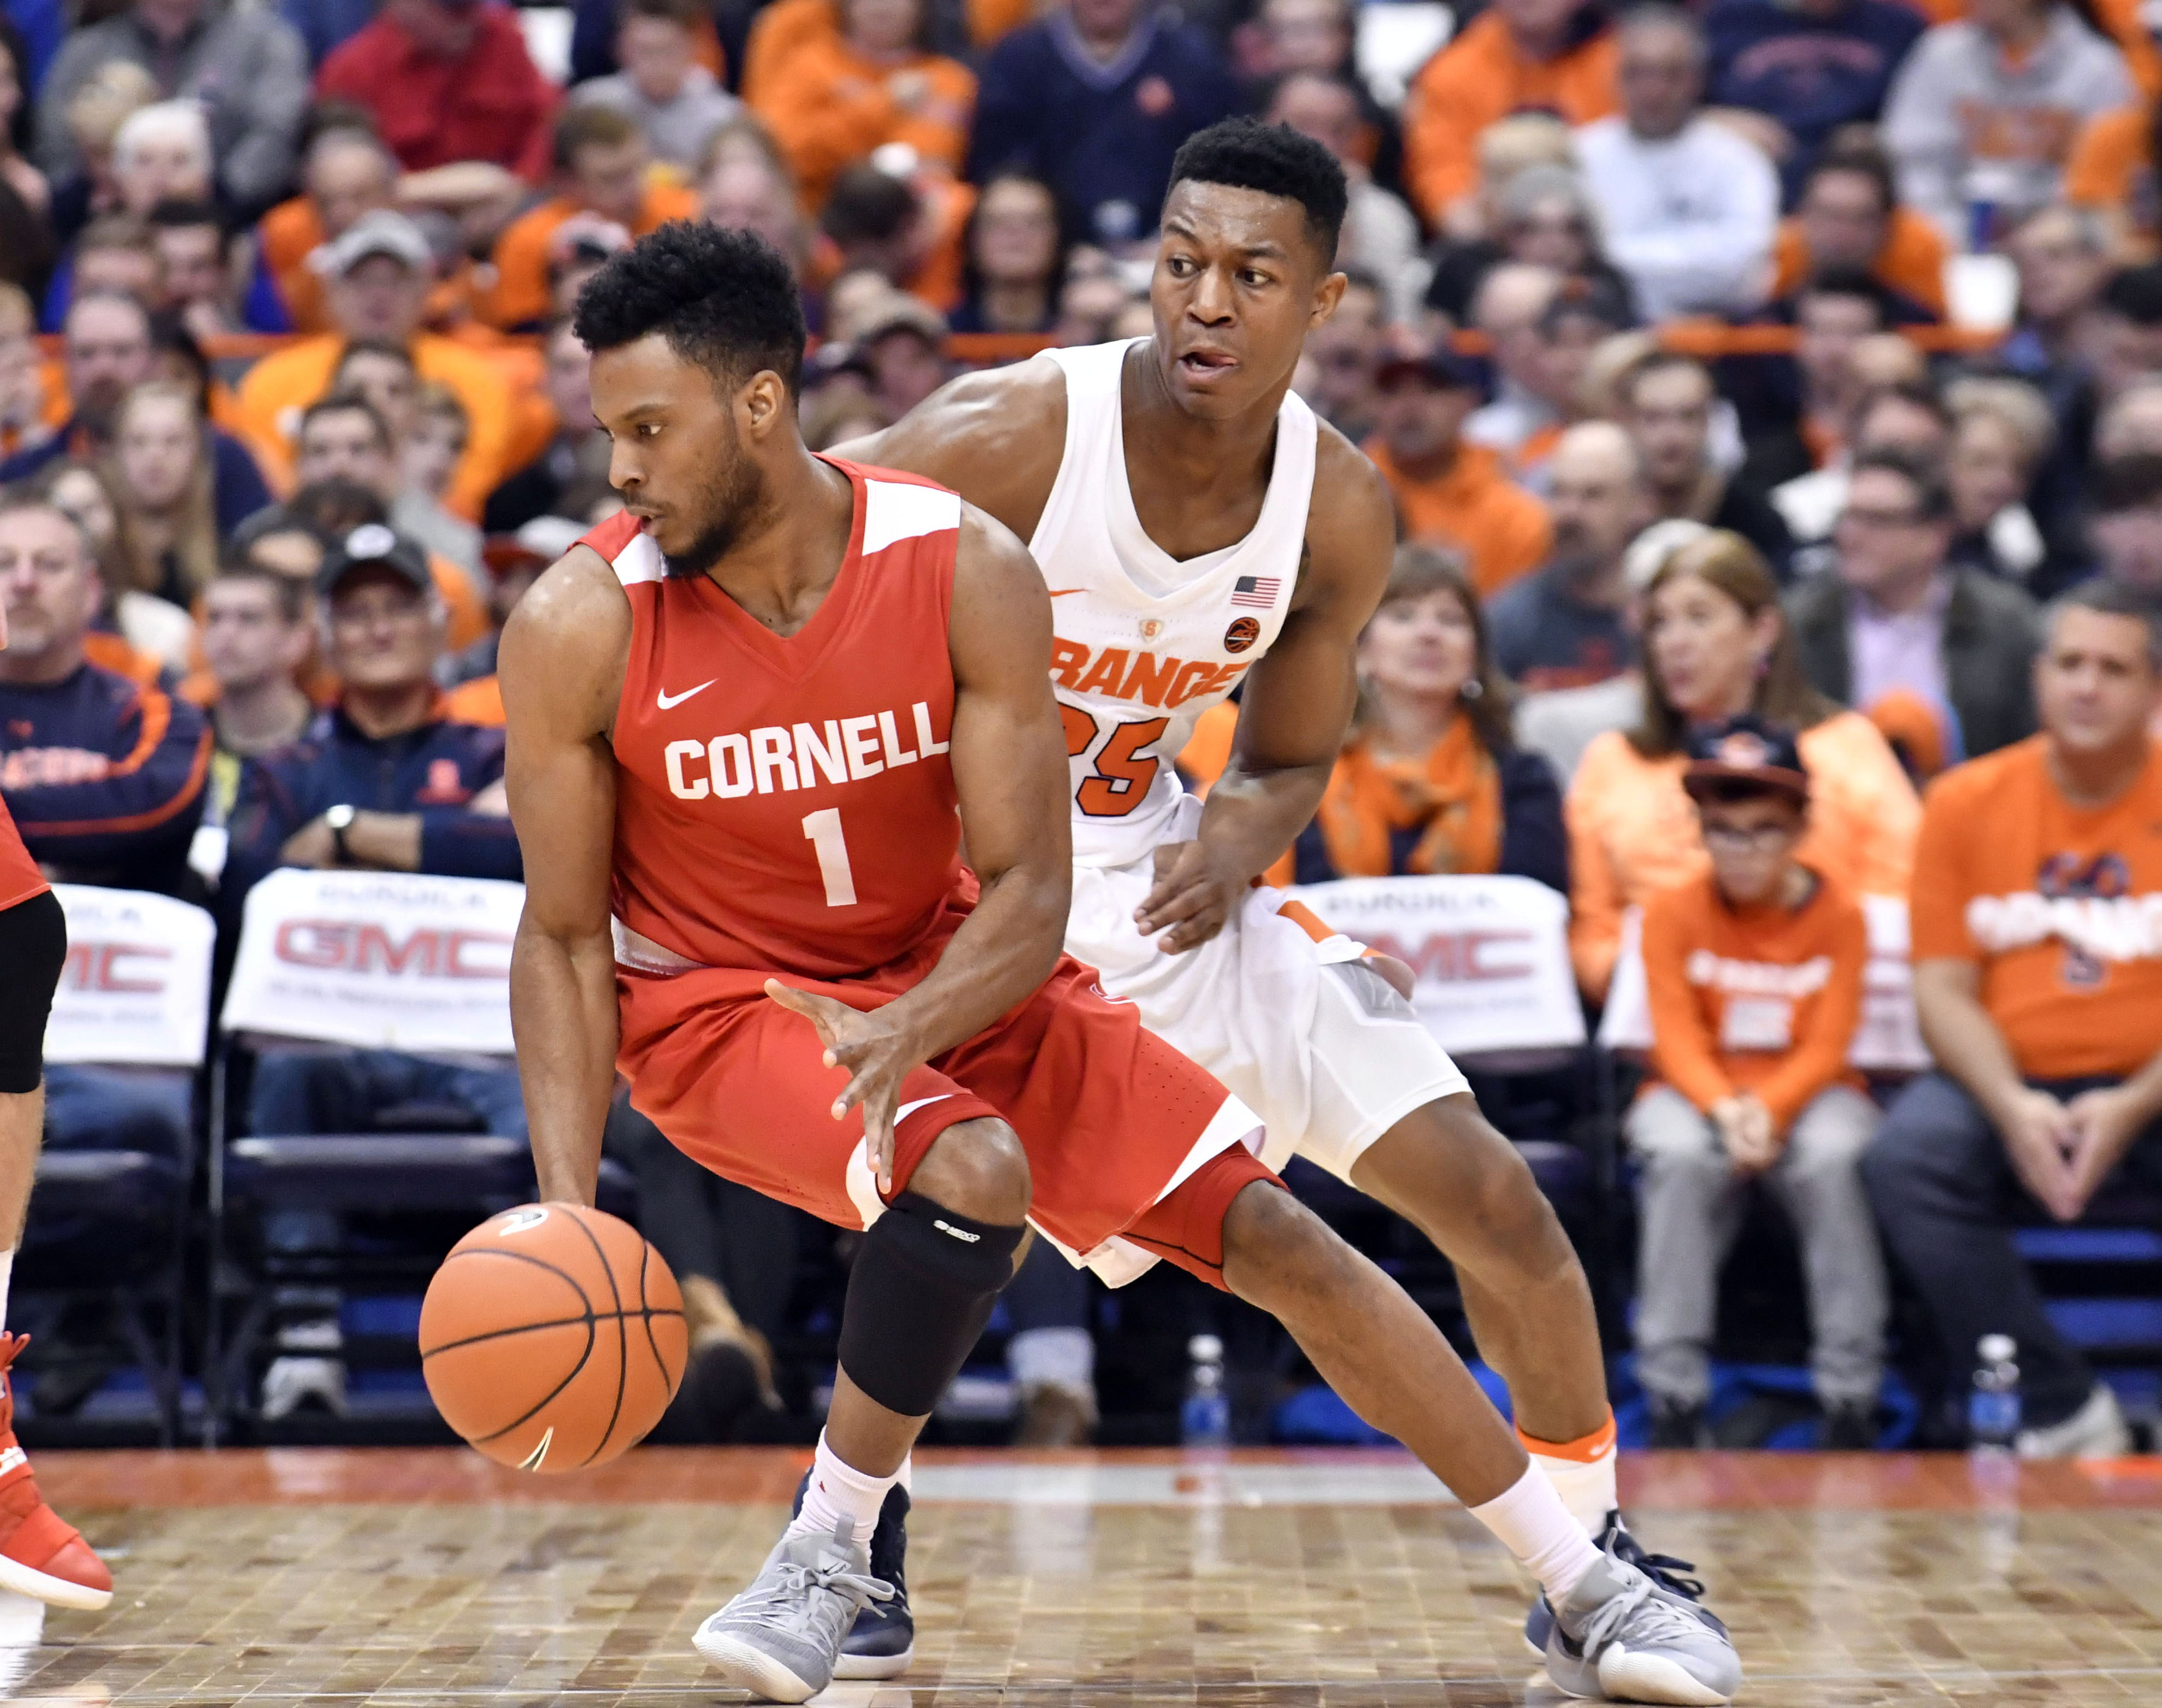 syracuse basketball vs cornell five things to watch troy nunes